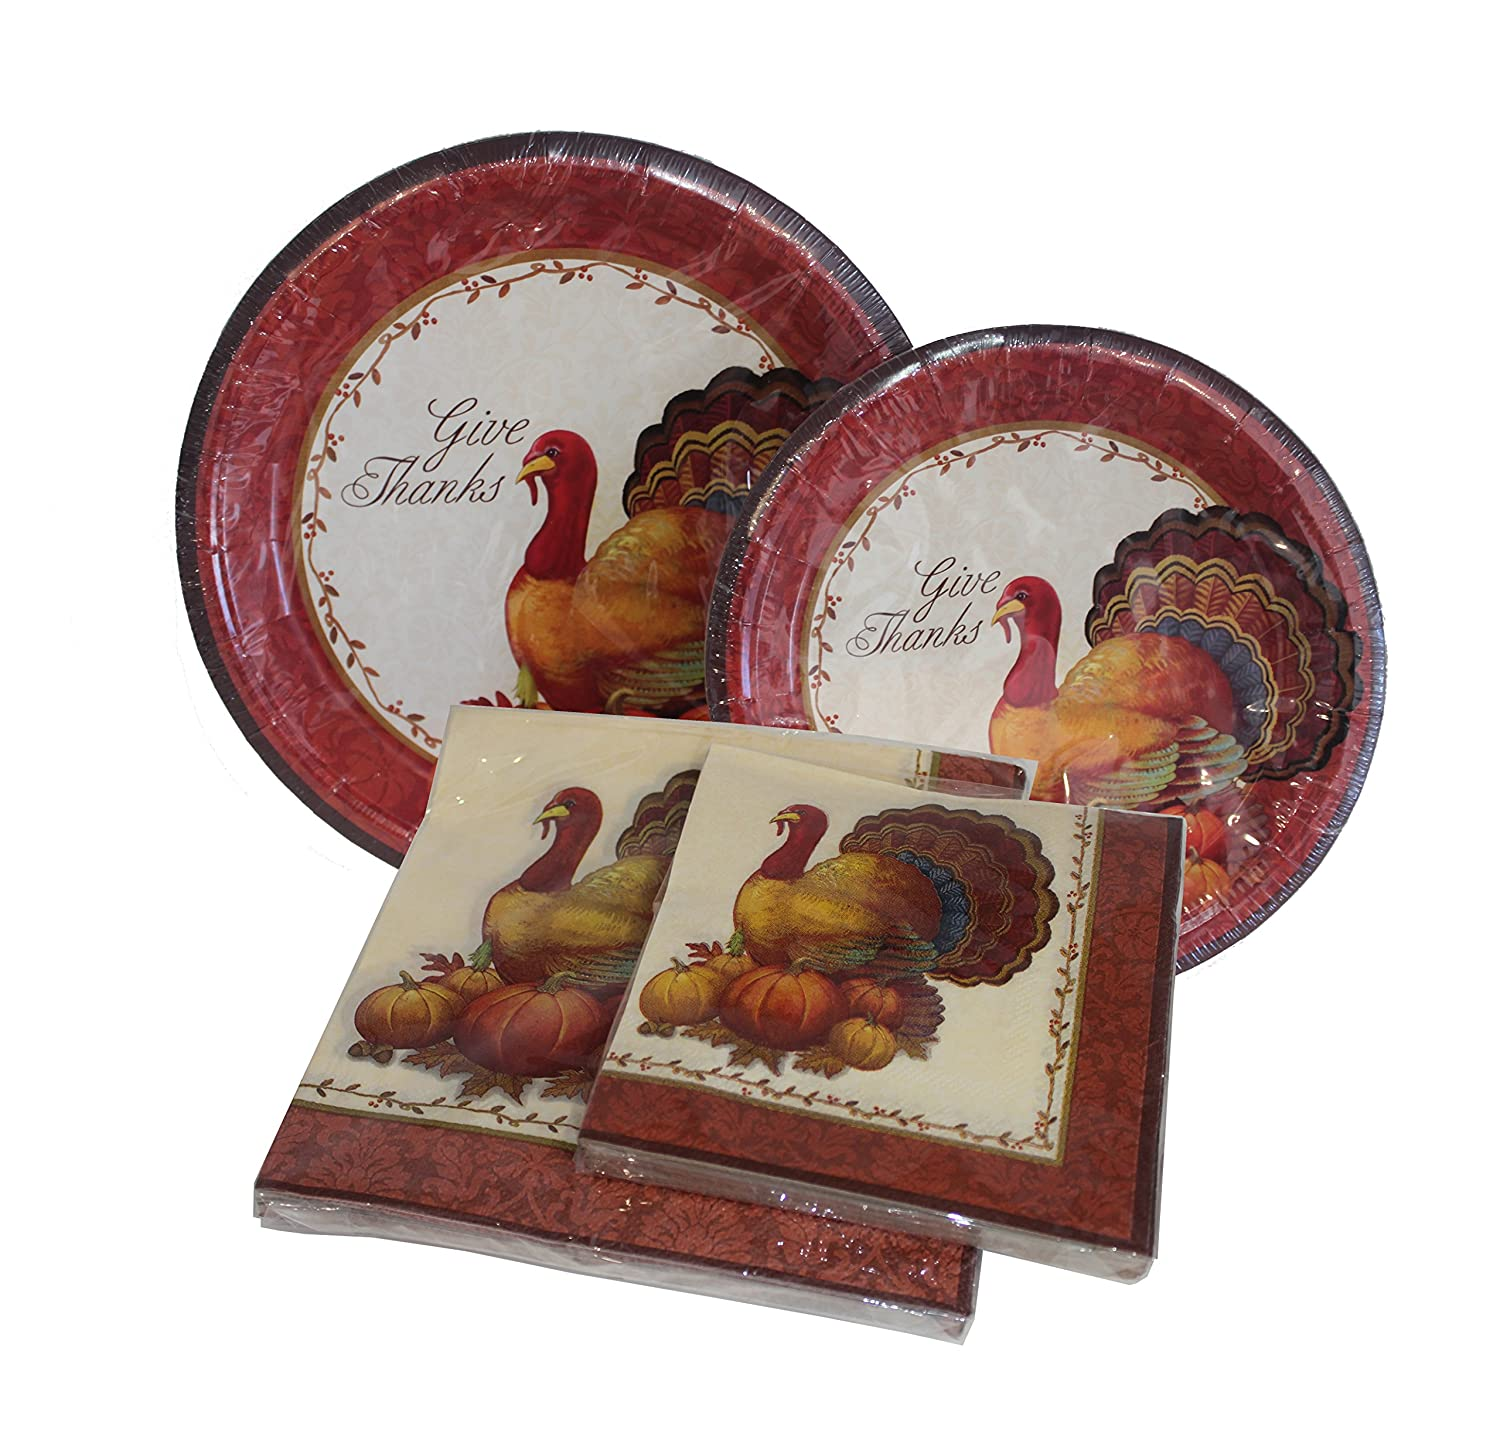 Amazon.com | Thanksgiving Plates and Napkins - 12ct Dinner Plates 12ct Dessert Plates 20 Count Dinner Napkins 20 Count Beverage Napkins Thanksgiving ...  sc 1 st  Amazon.com & Amazon.com | Thanksgiving Plates and Napkins - 12ct Dinner Plates ...